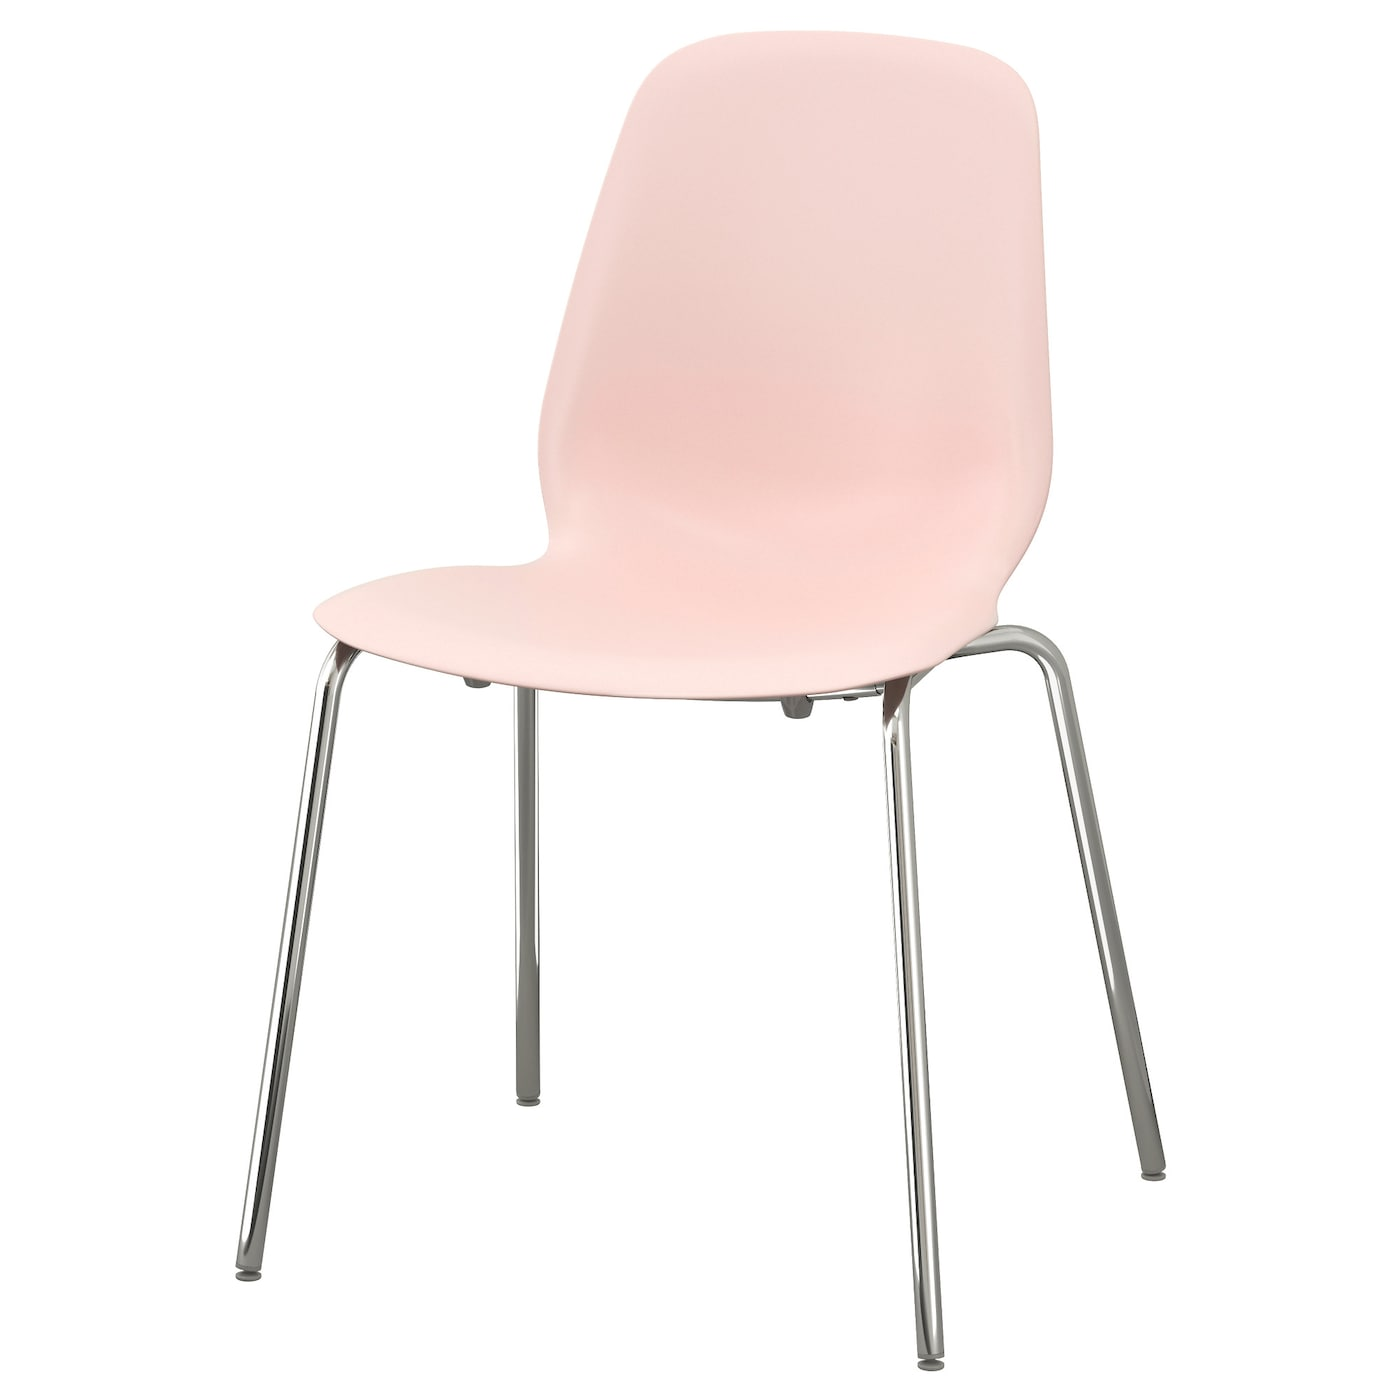 leifarne chair pink broringe chrome plated ikea. Black Bedroom Furniture Sets. Home Design Ideas